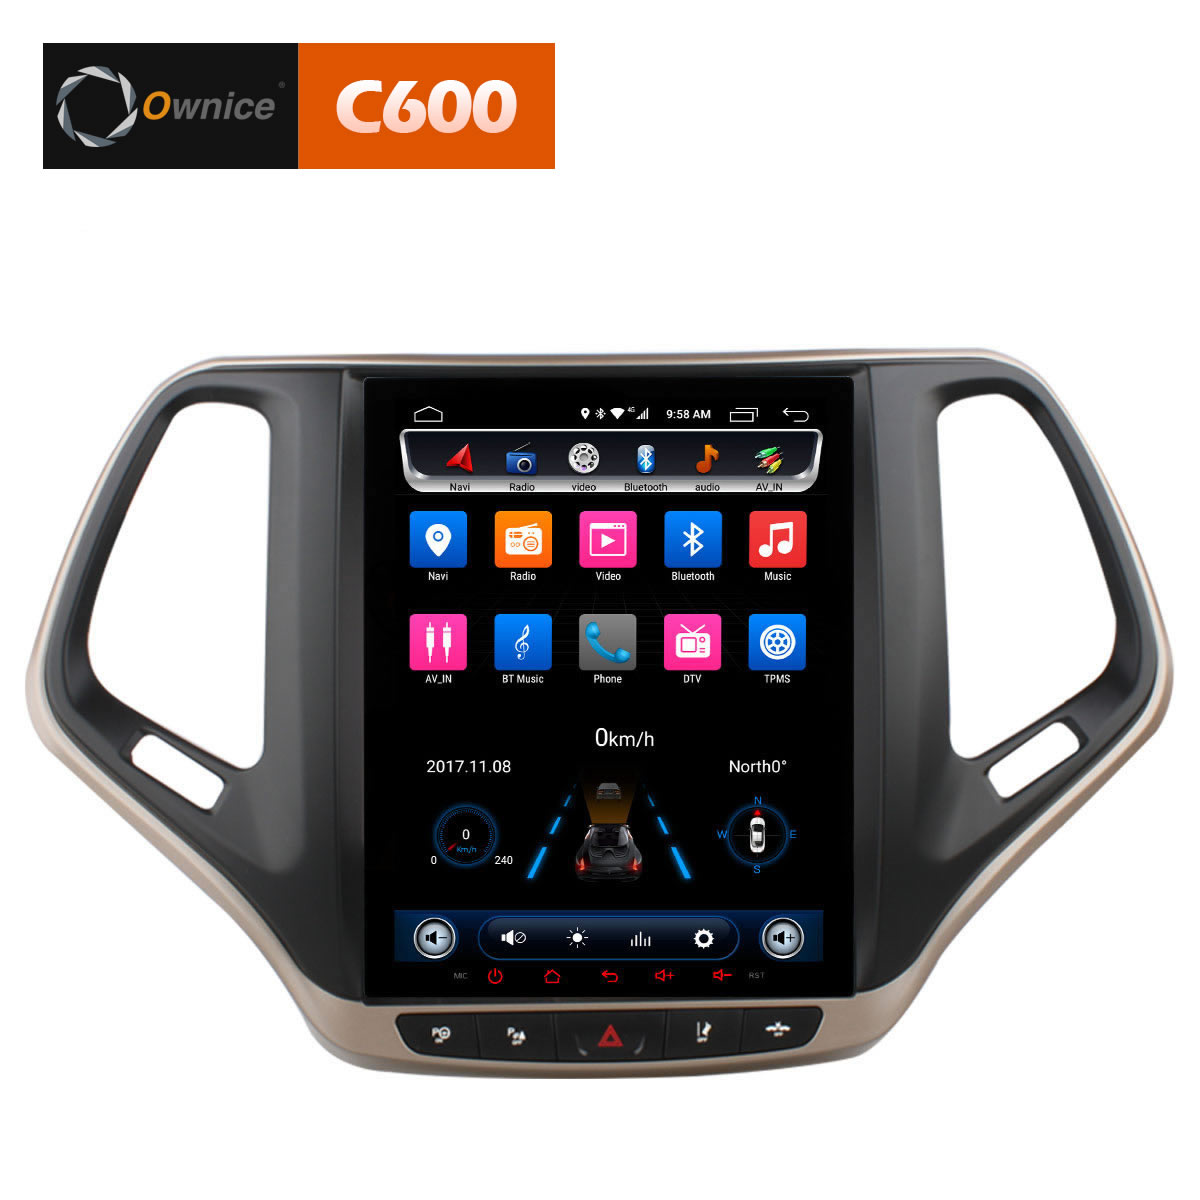 Штатная магнитола CARMEDIA OL-9256-9 Tesla Style (C600+) Jeep Cherokee 2014+ 9 inch quad core tablet pc a33 atm7029 rom 8g 1024 600 pxl android 4 4 bluetooth fm hdmi android tablet 9 8 7